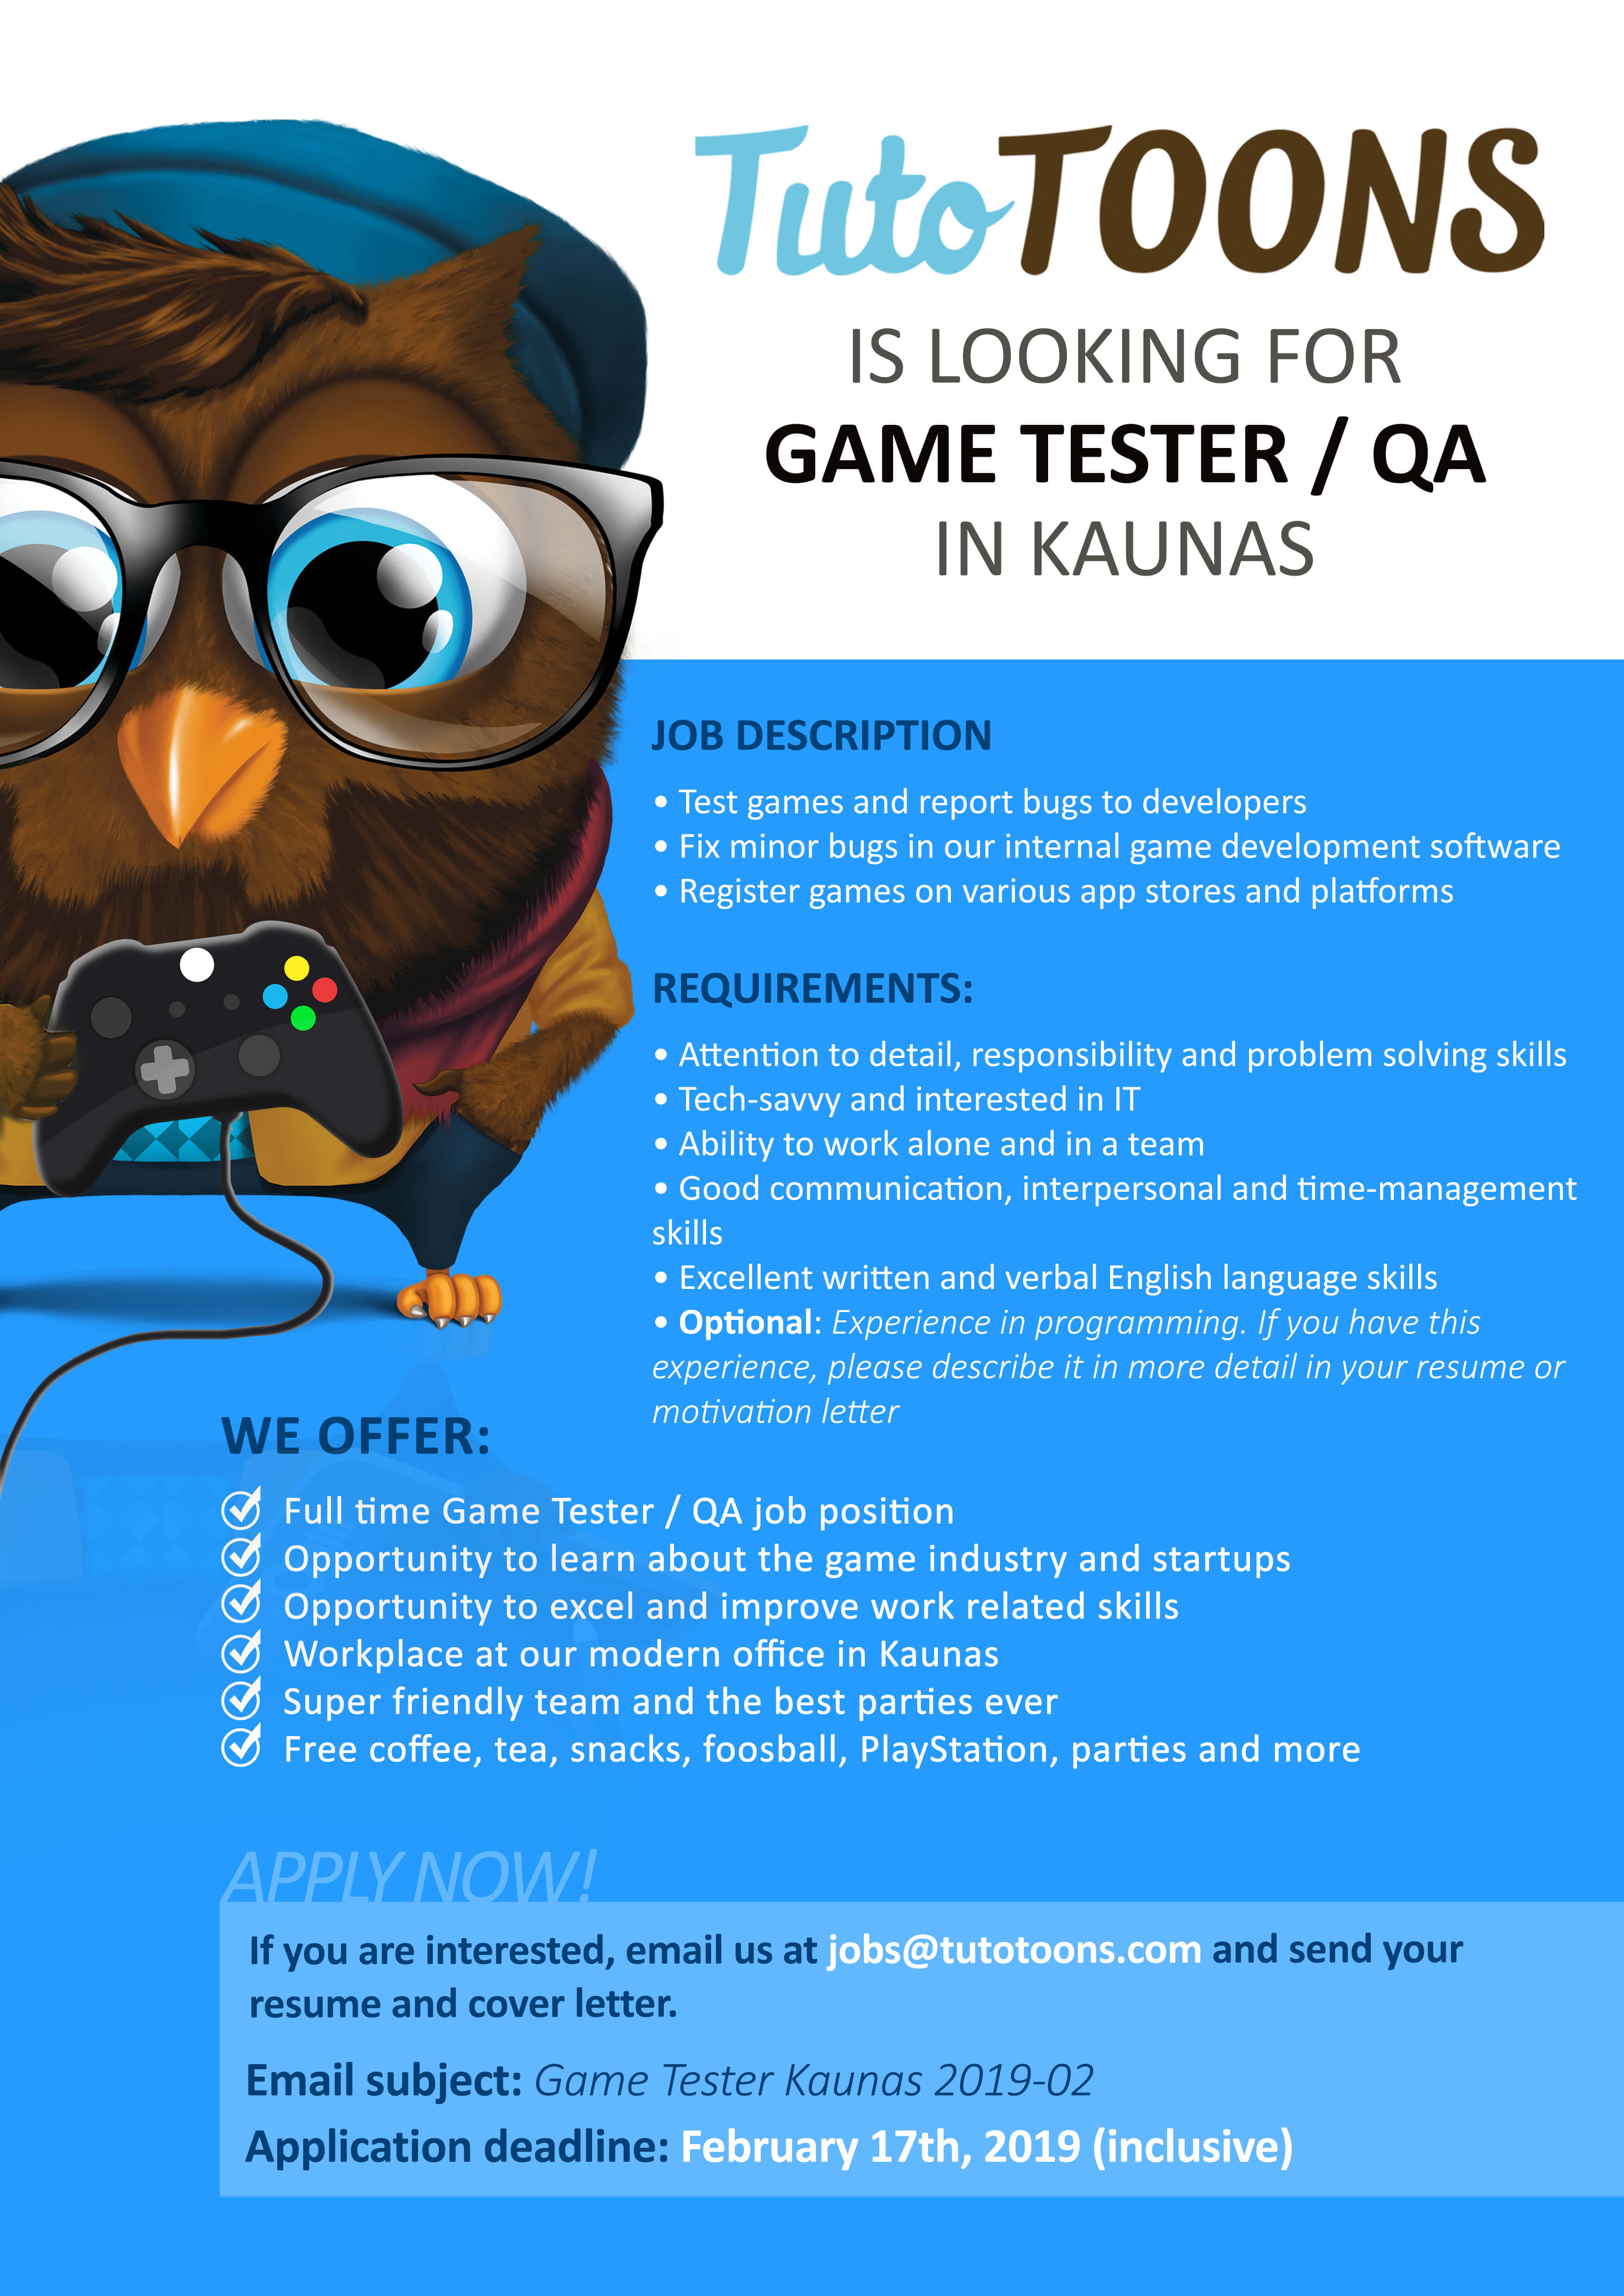 TutoTOONS Is Looking for a Game Tester / QA! | TutoTOONS Blog – Kids ...